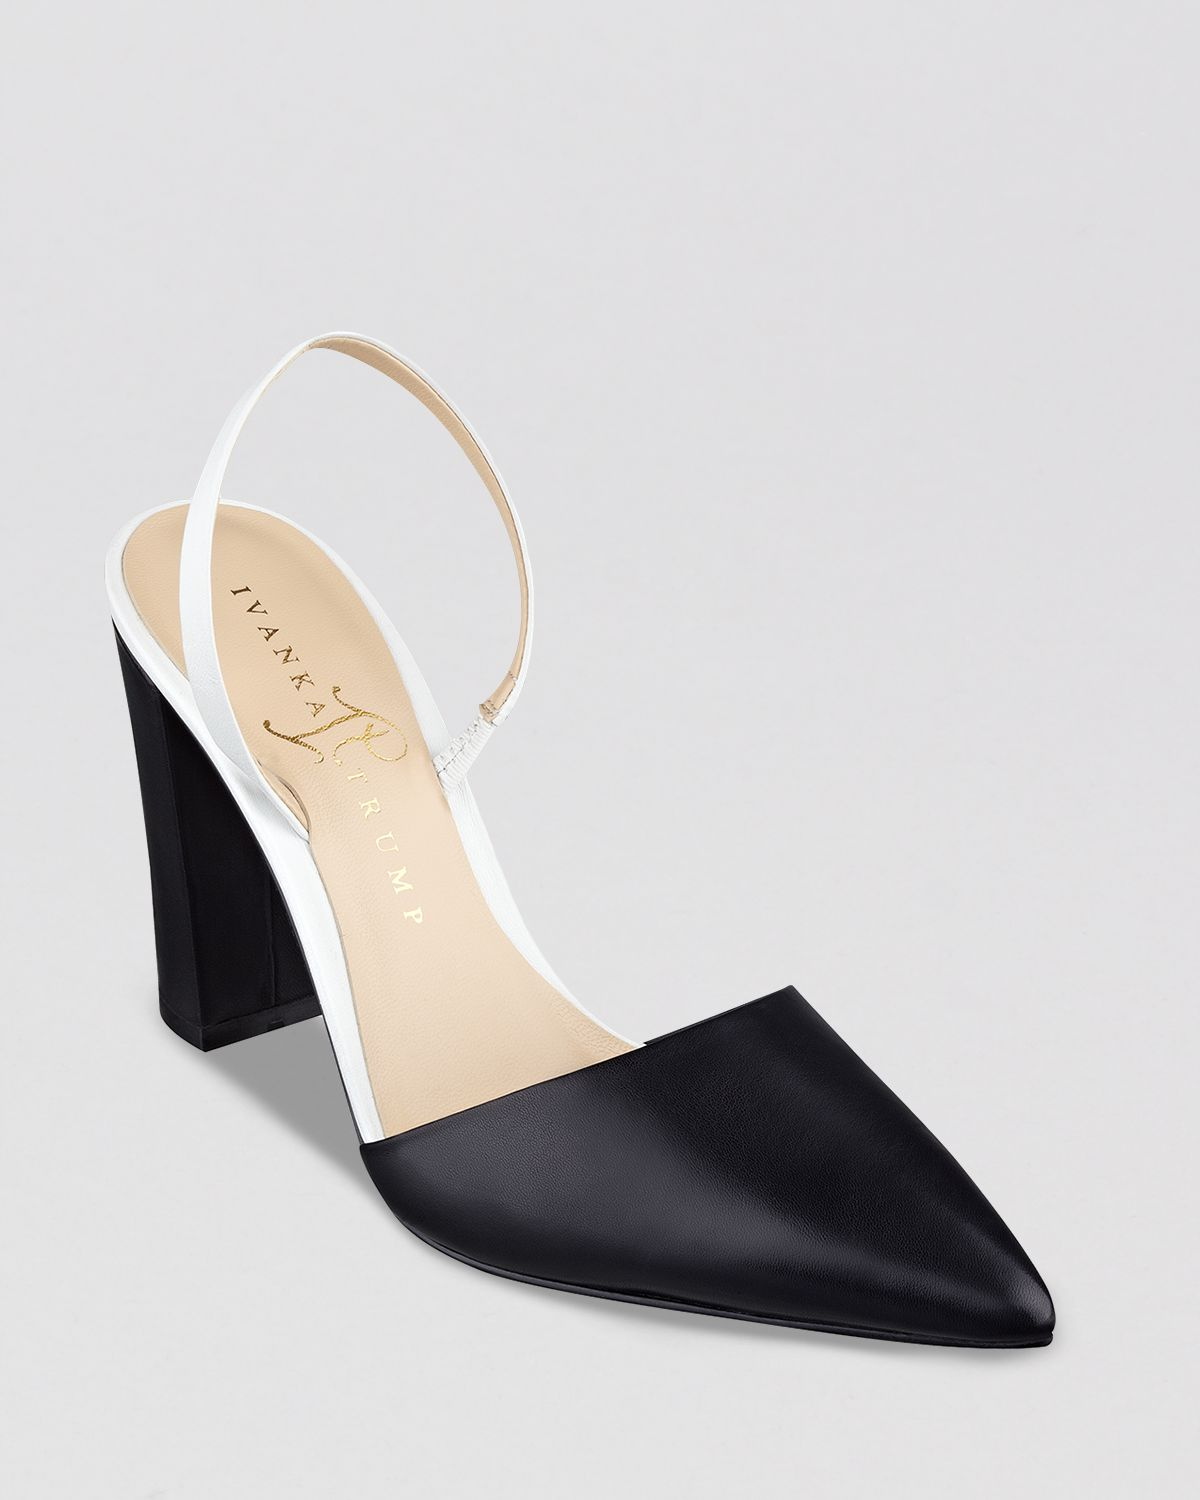 IVANKA TRUMP Pointed Toe Pumps - Cami Slingback High Heel | Bloomingdale's